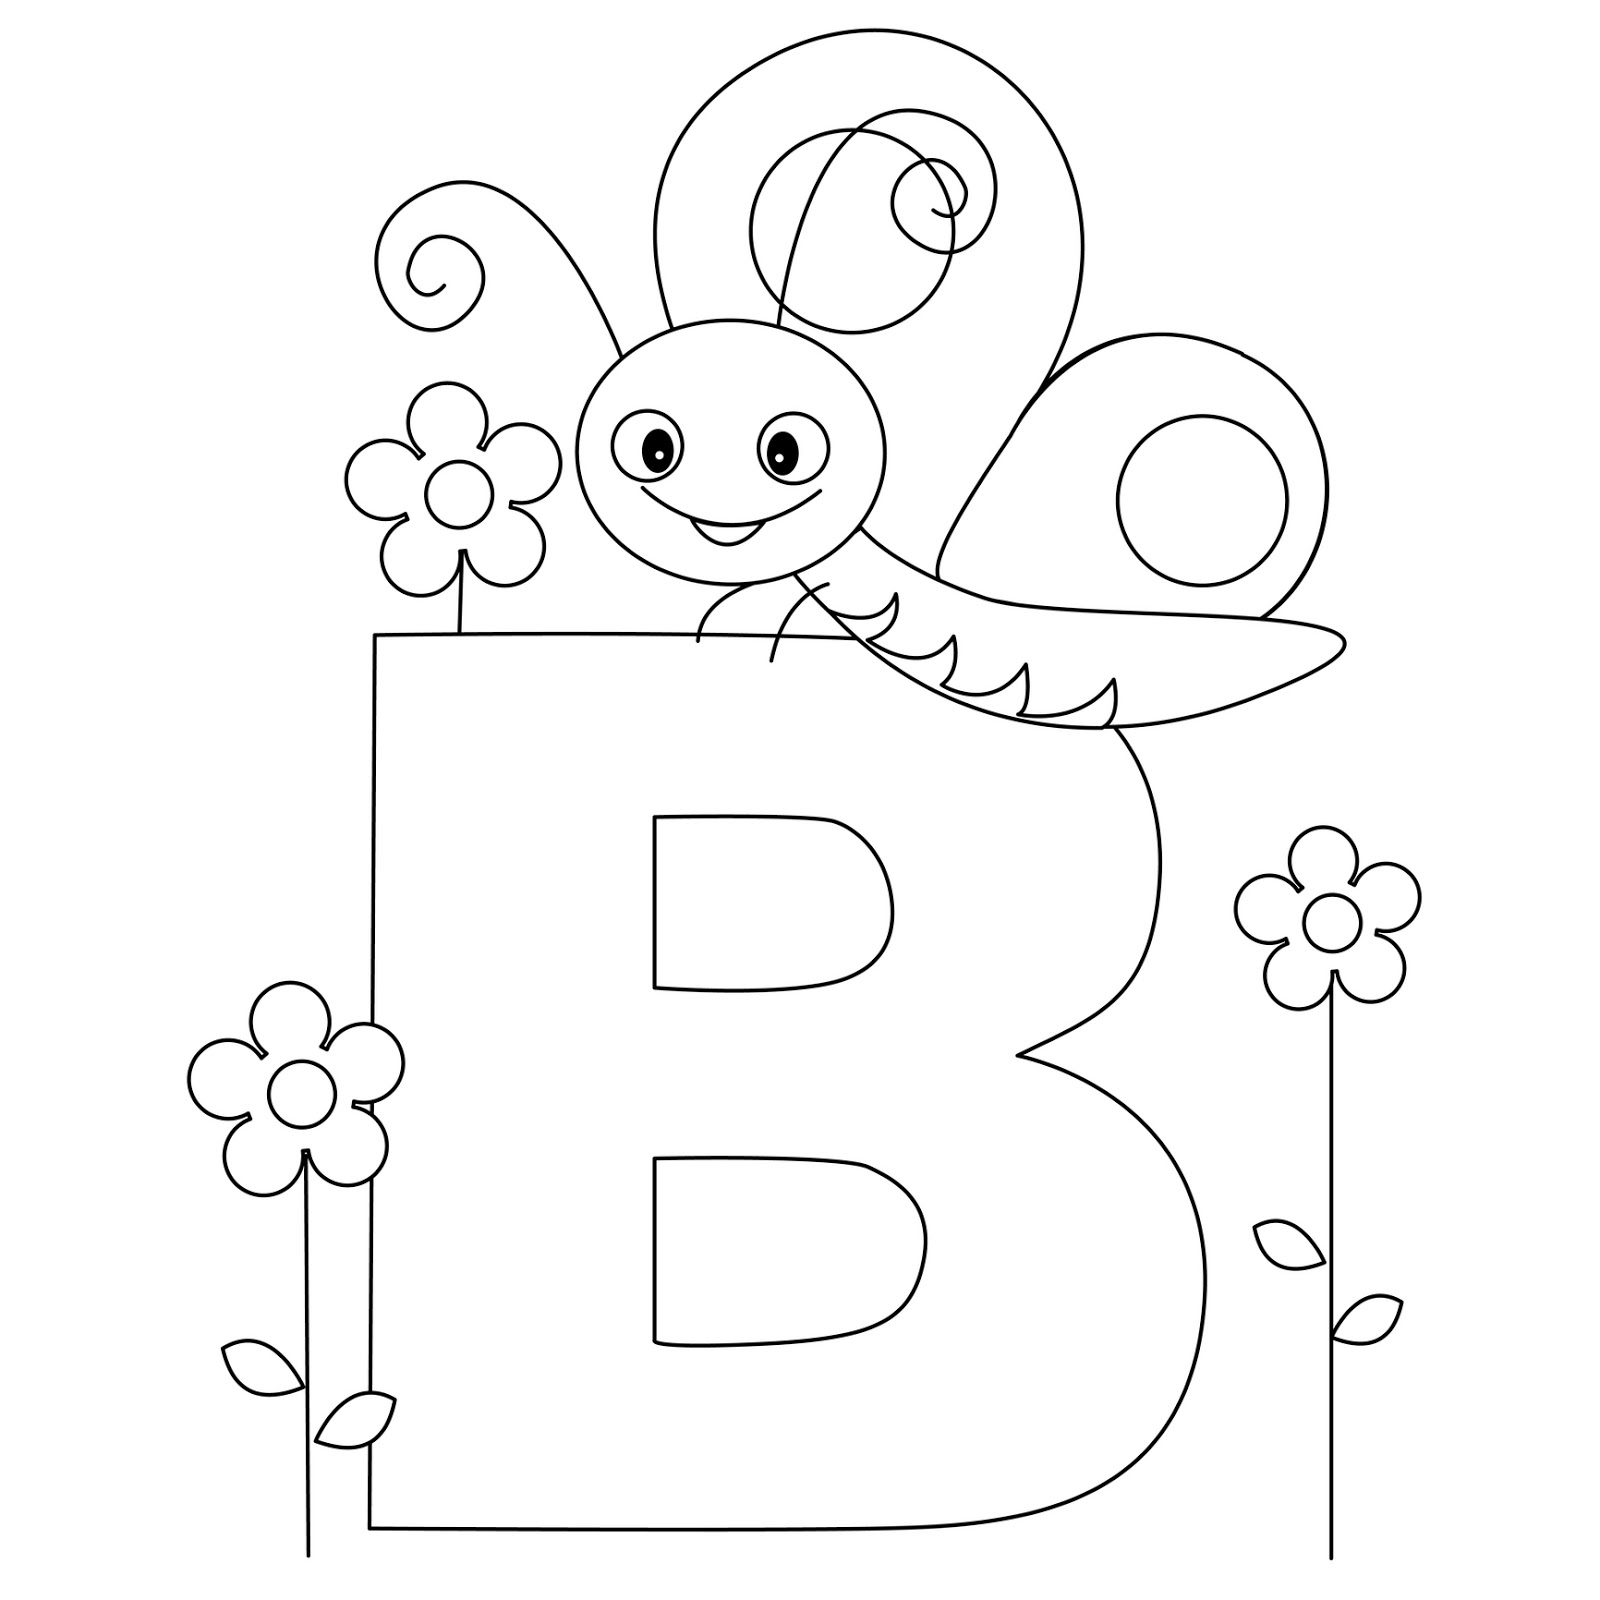 Alphabet Coloring Pages Letter B Coloring Pages